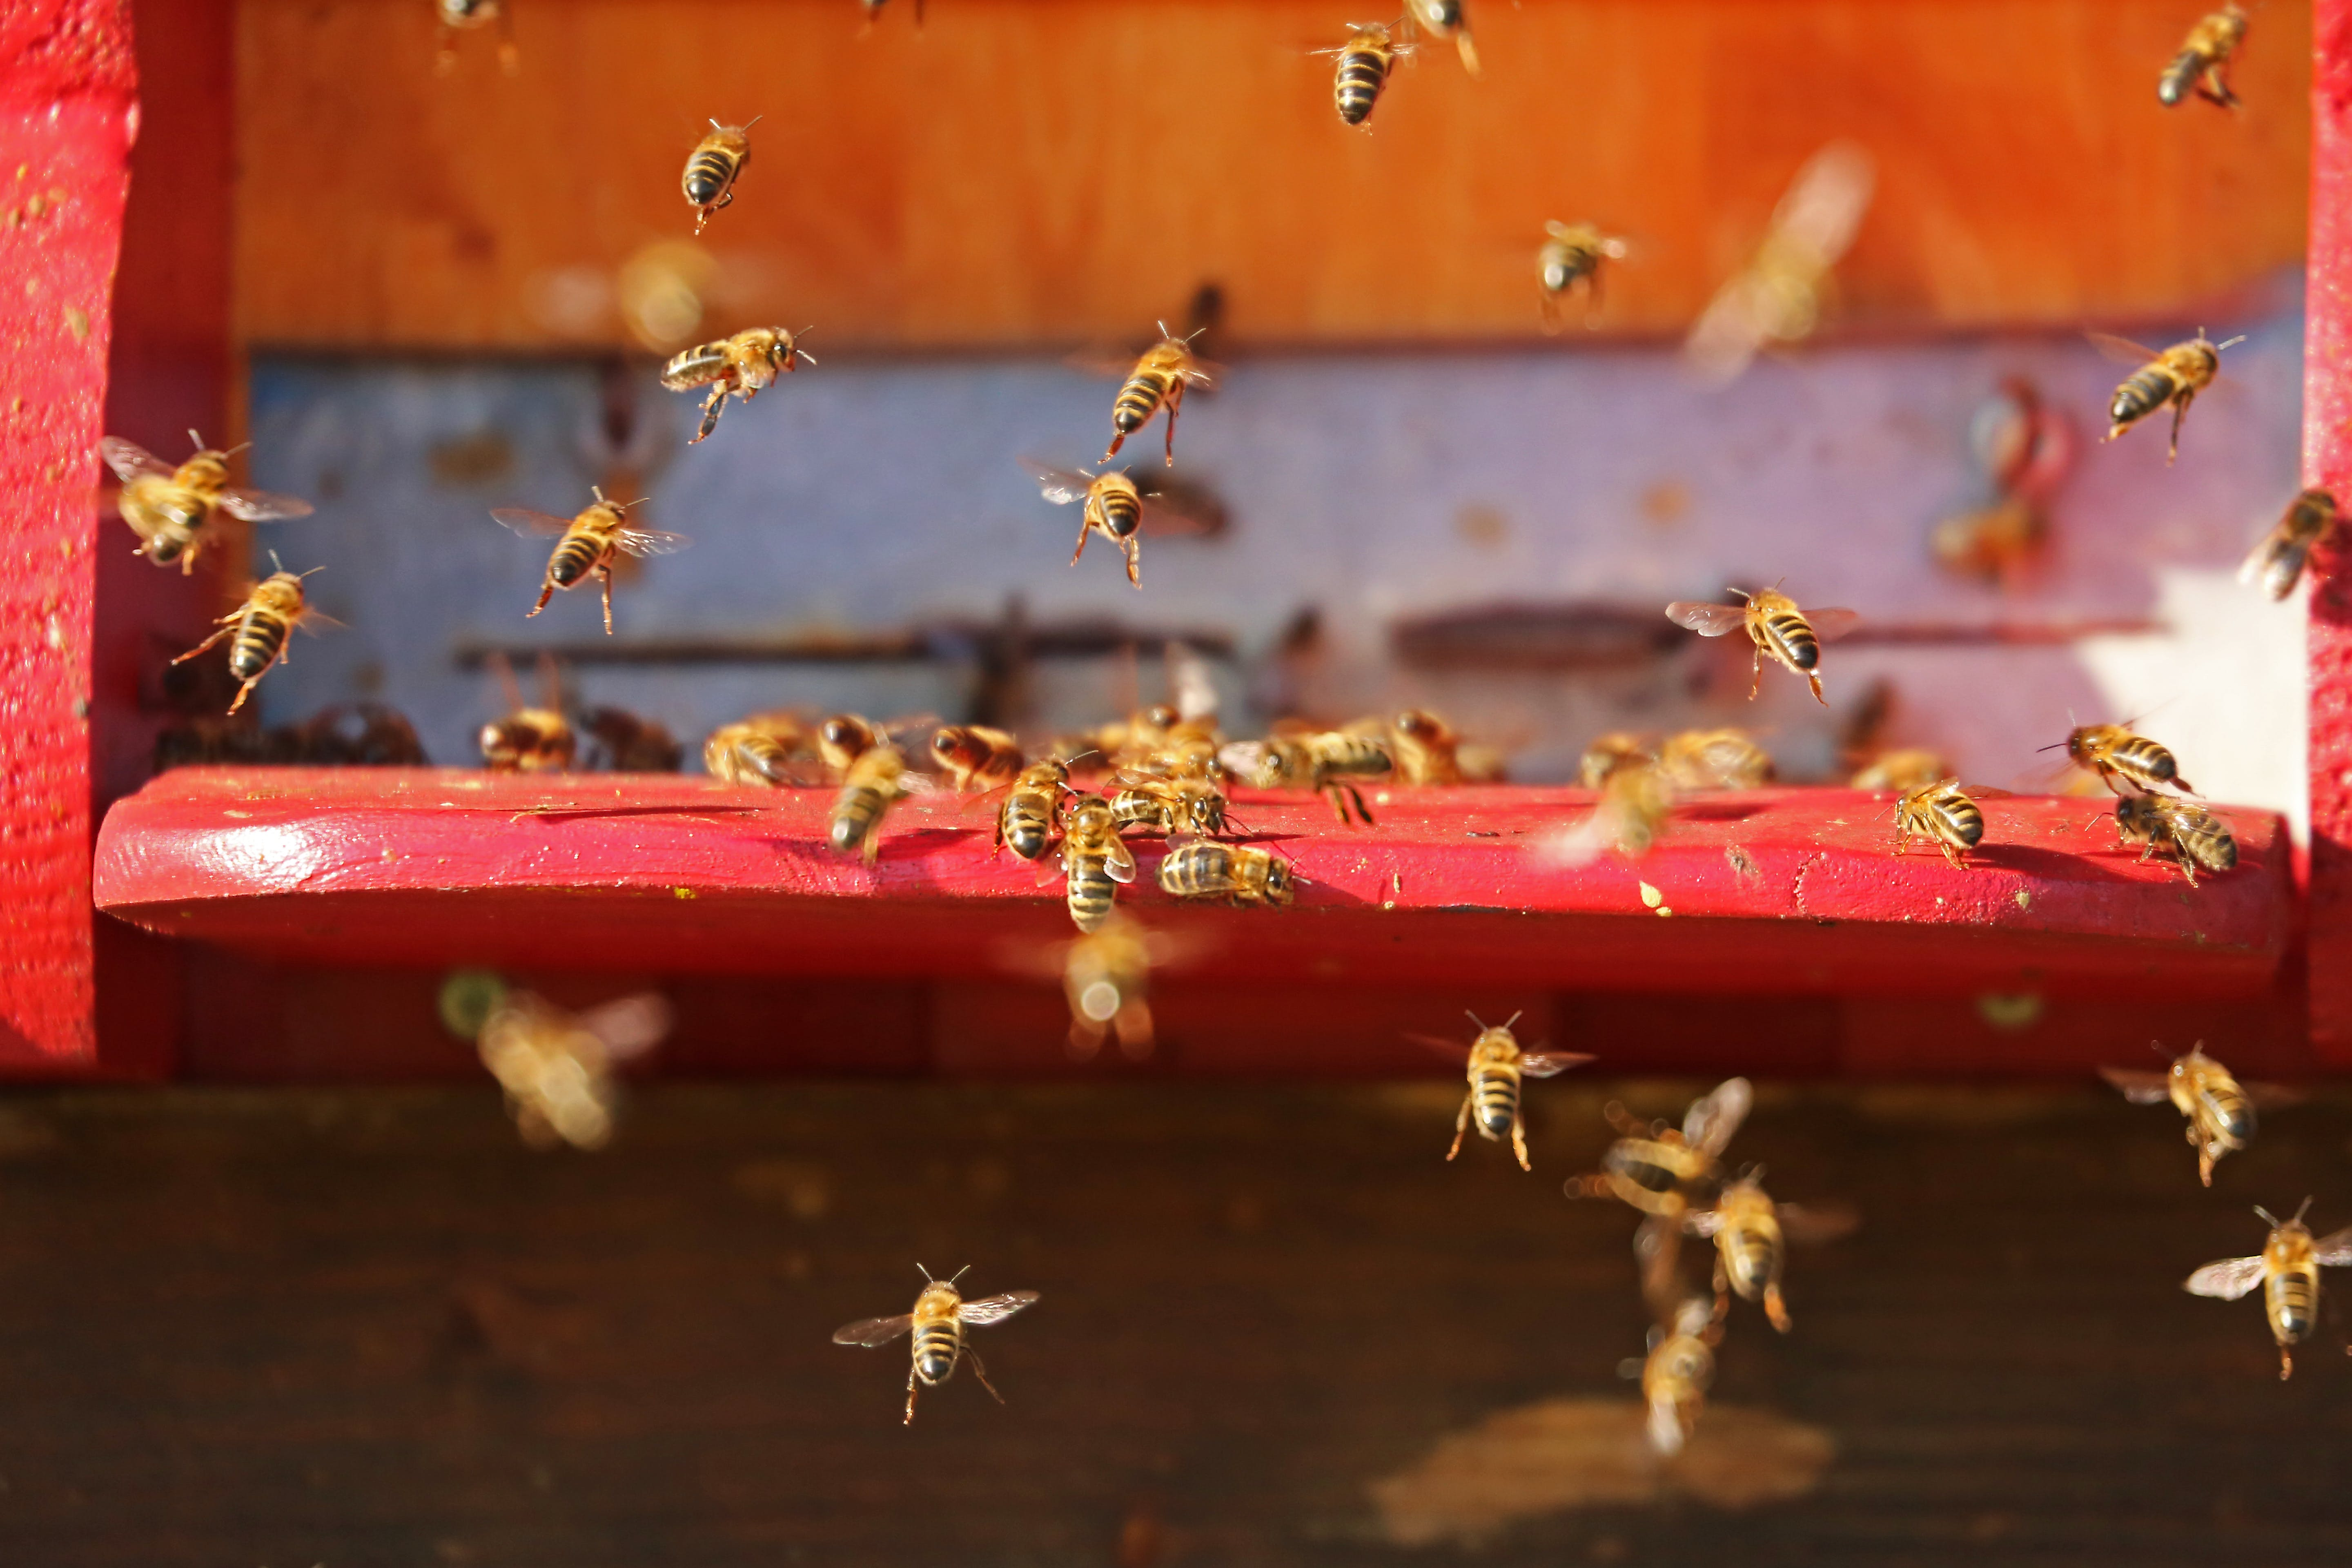 Flying Bees in Close-up Photo